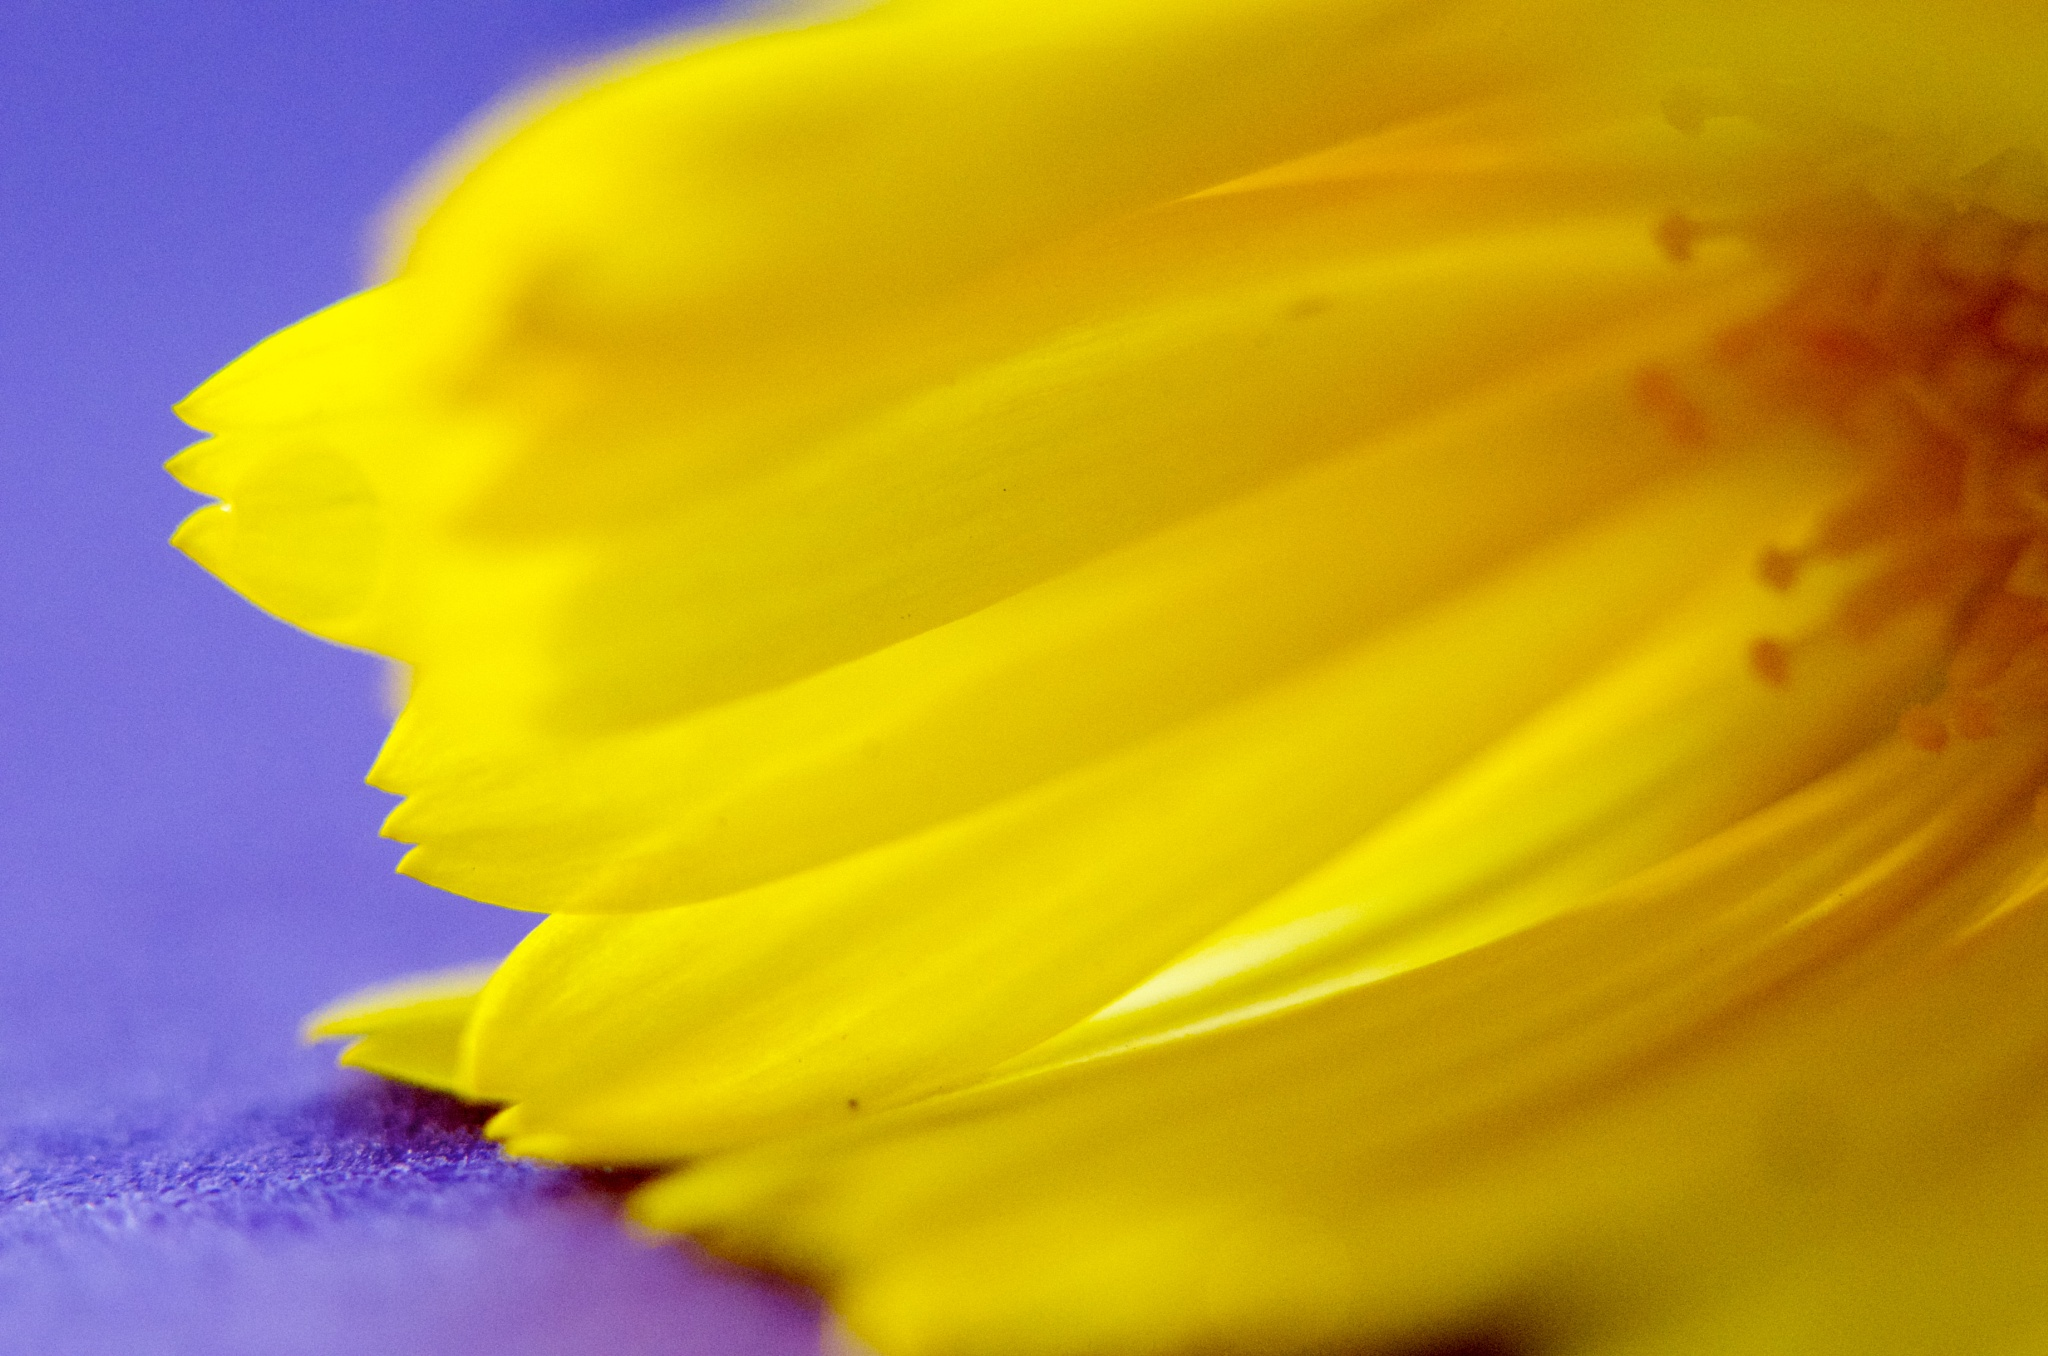 Yellow on purple by pam.simonsson